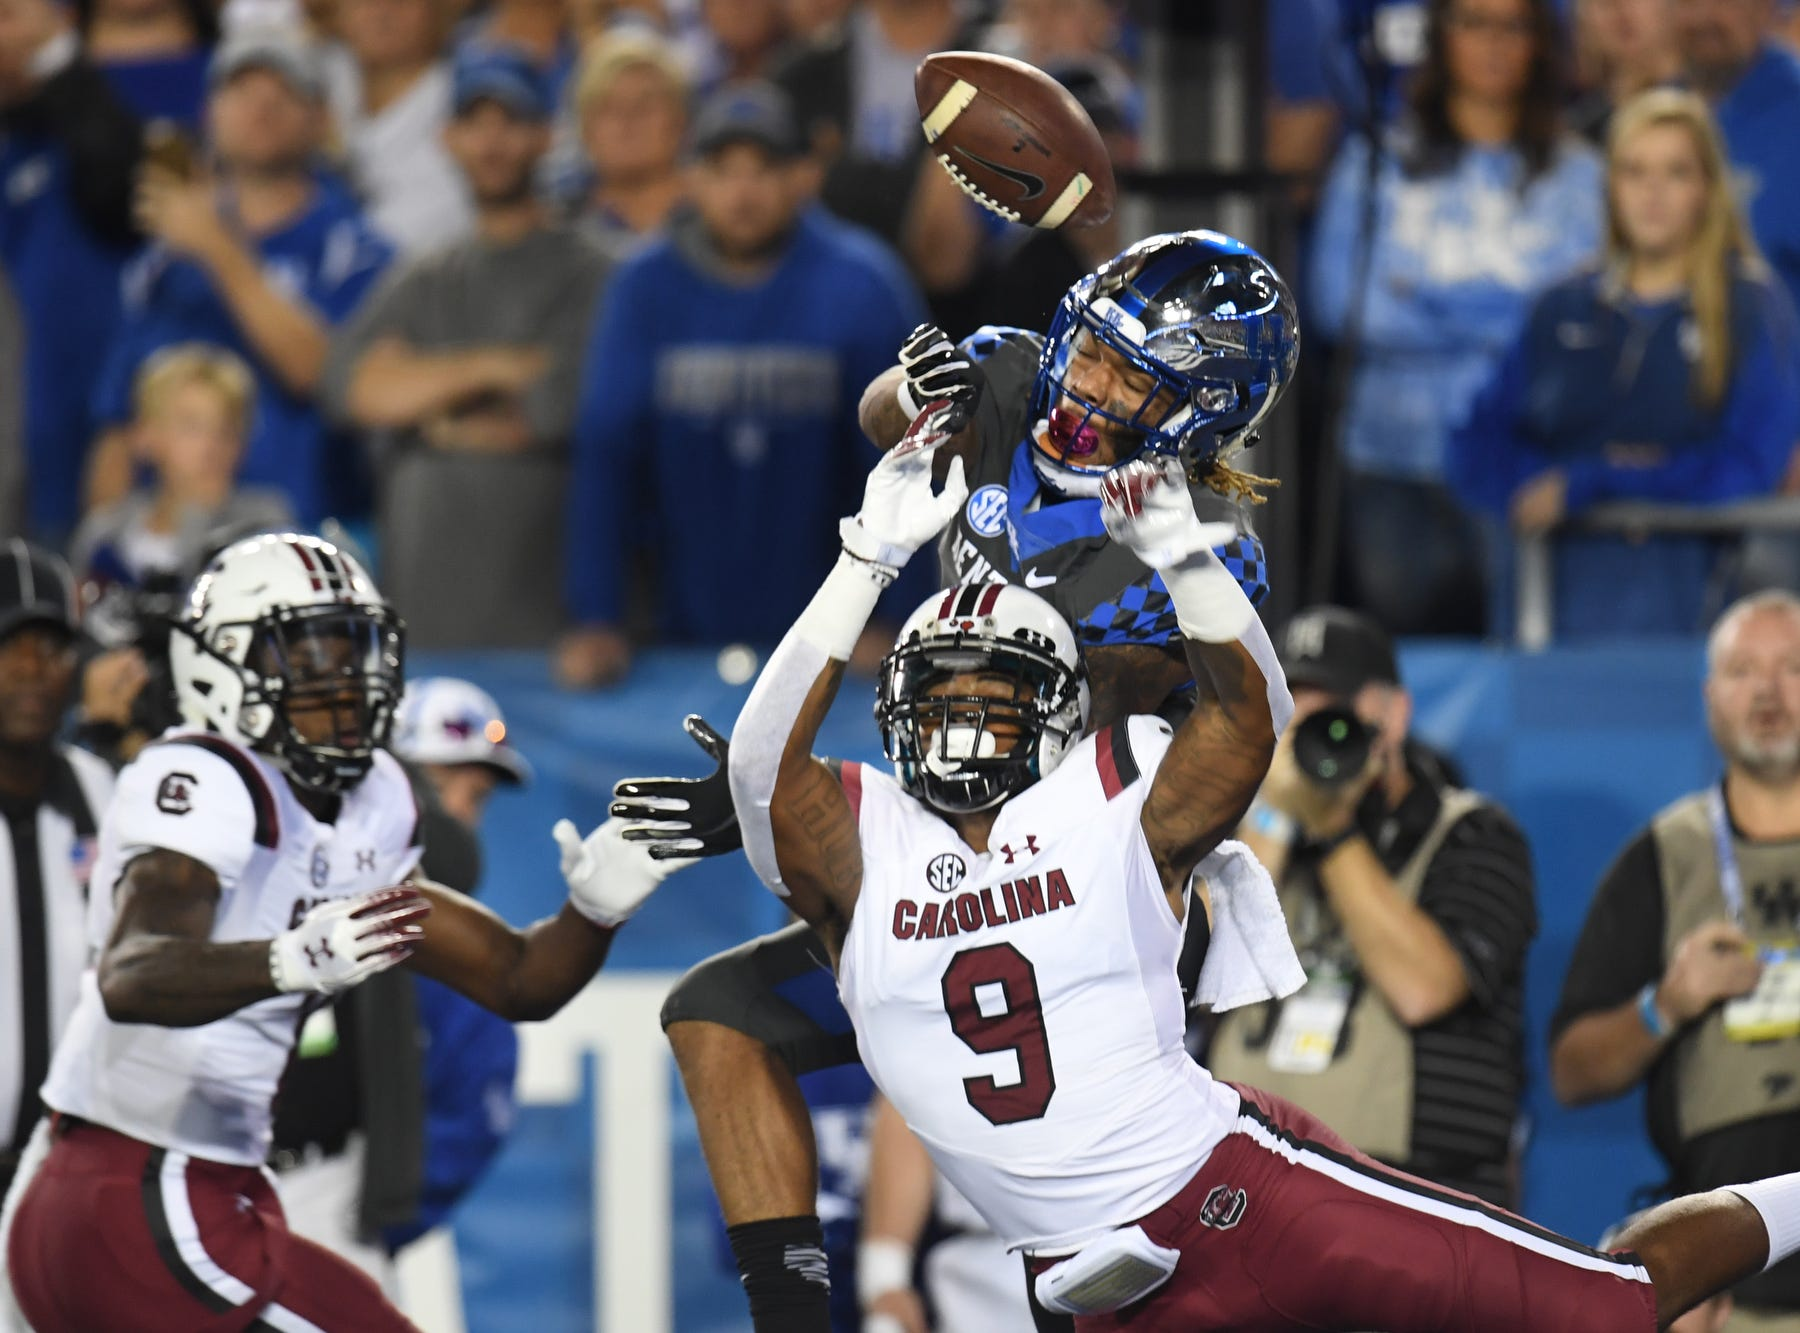 USC defenders break up a pass intended for UK WR Lynn Bowden, Jr. during the University of Kentucky football game against South Carolina at Kroger Field in Lexington, Kentucky on Saturday, September 29, 2018.